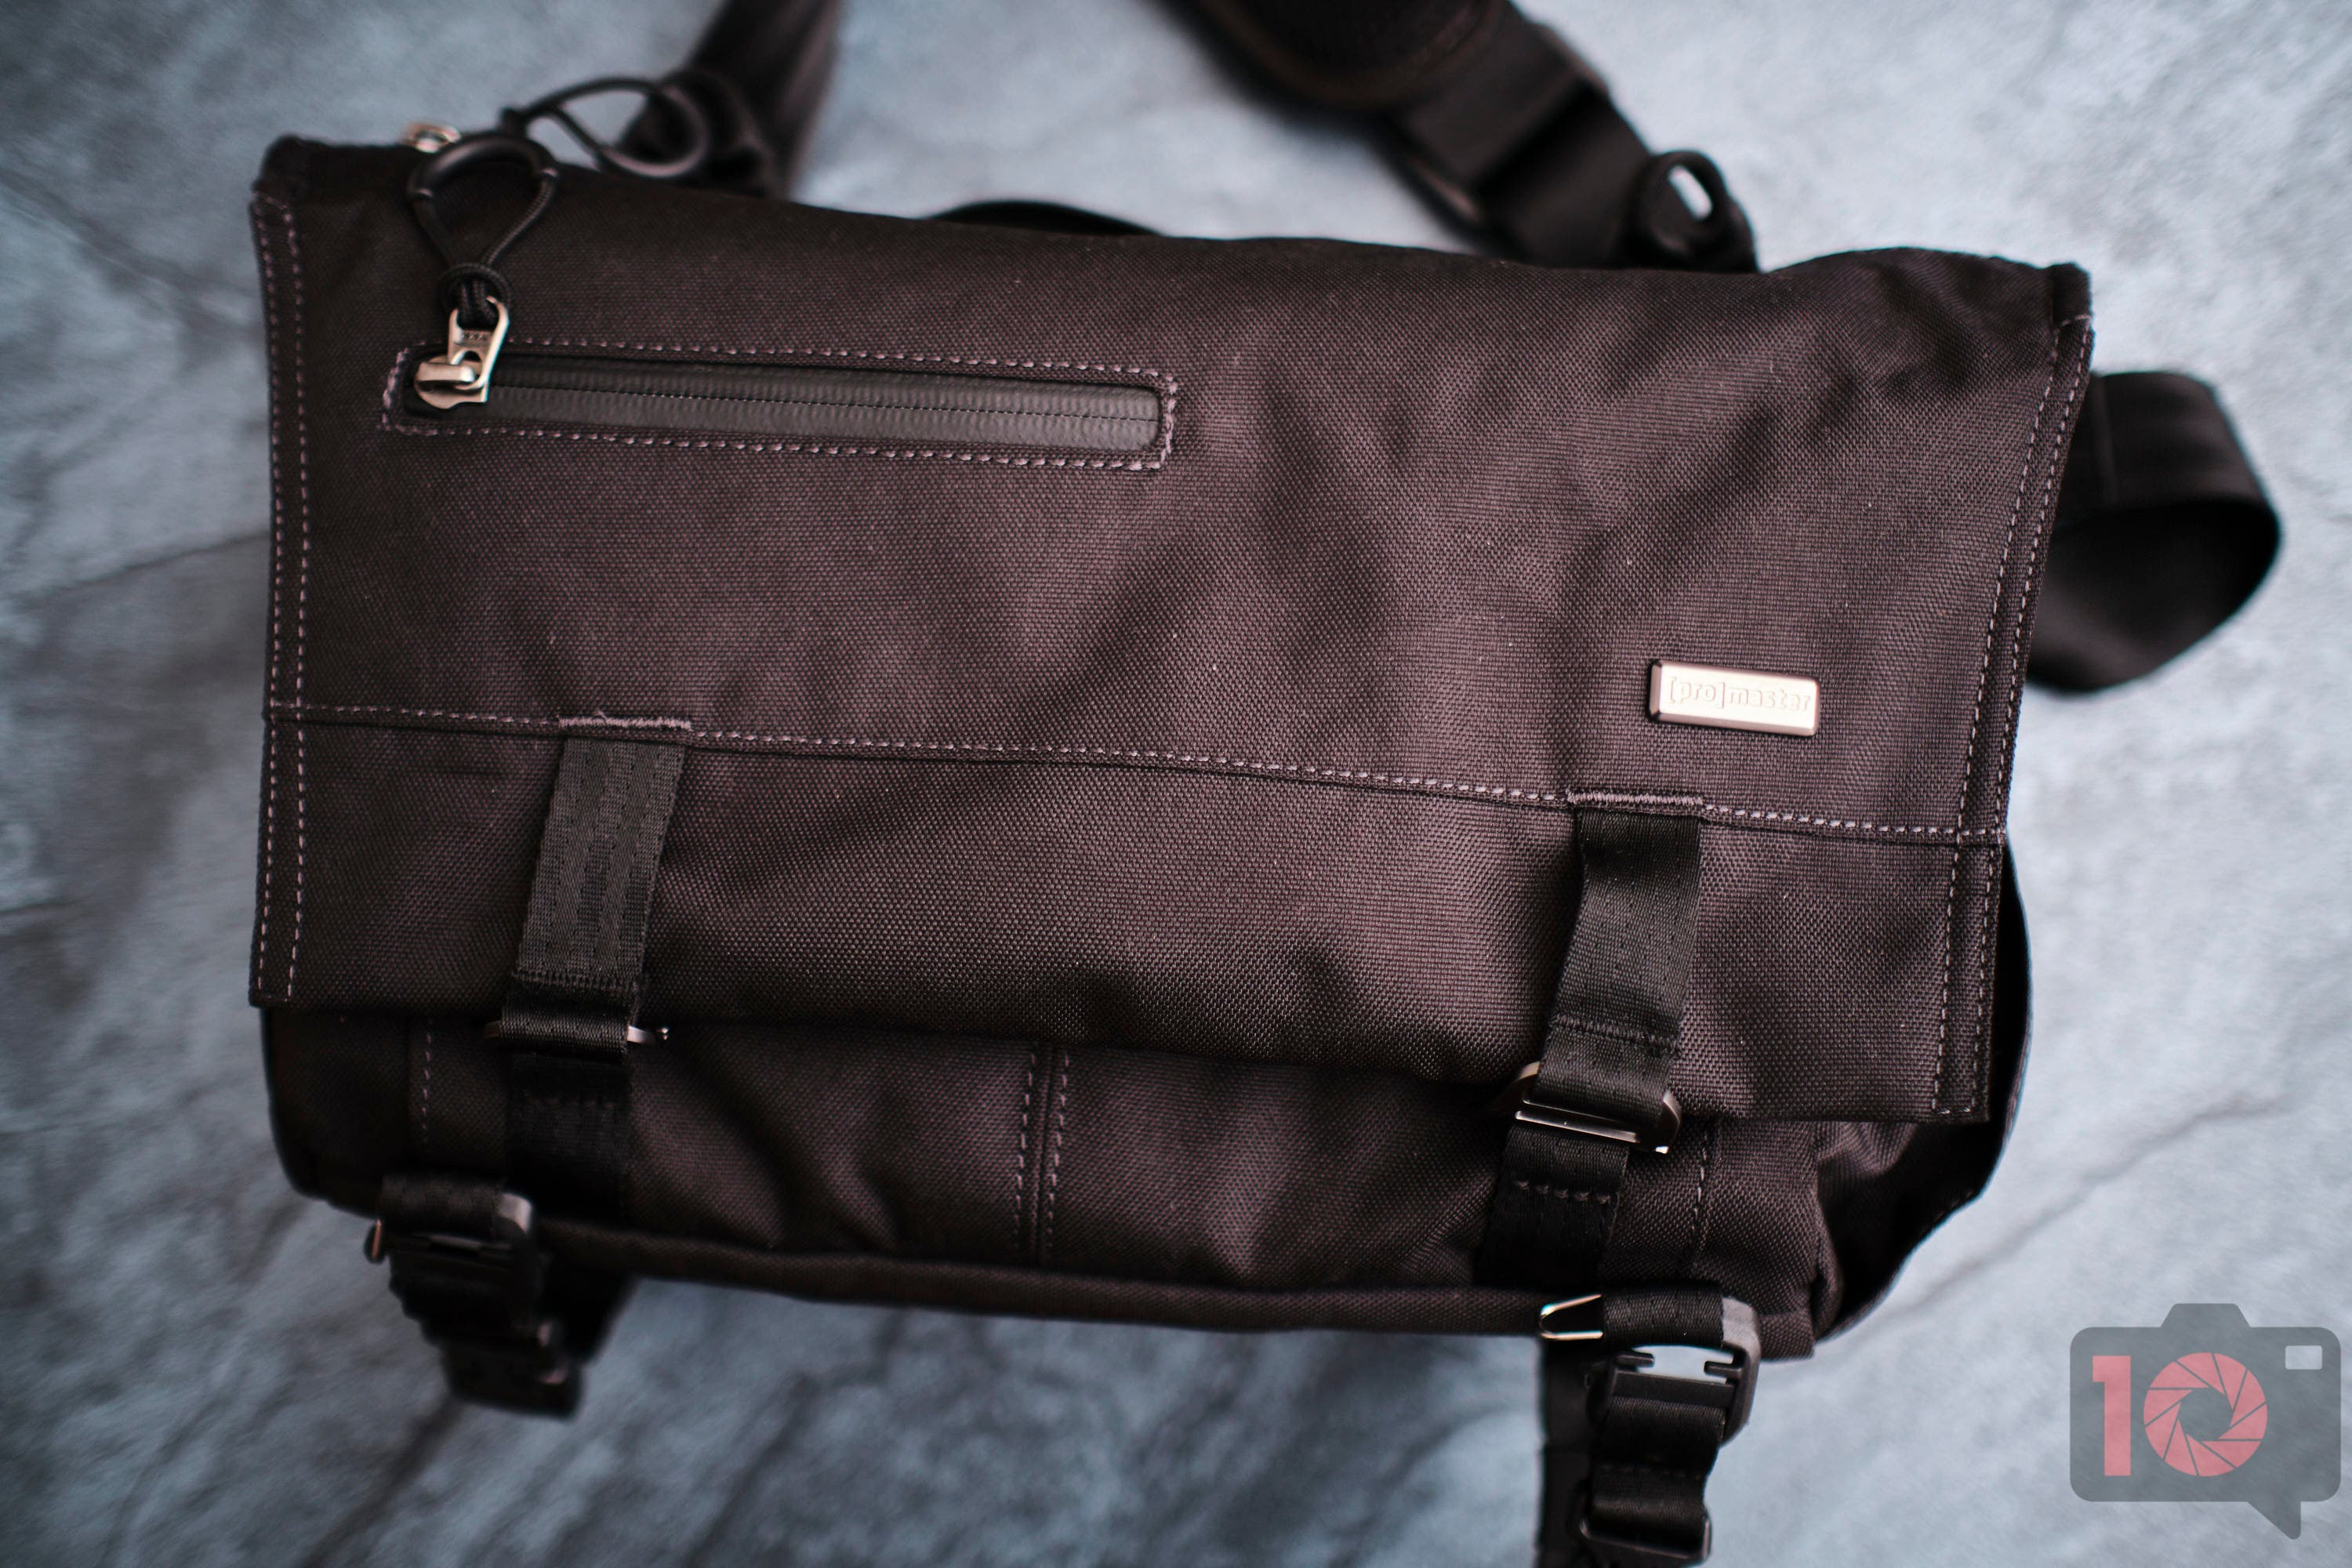 Very Comfortable Camera Bag: ProMaster Jasper Medium Satchel Review